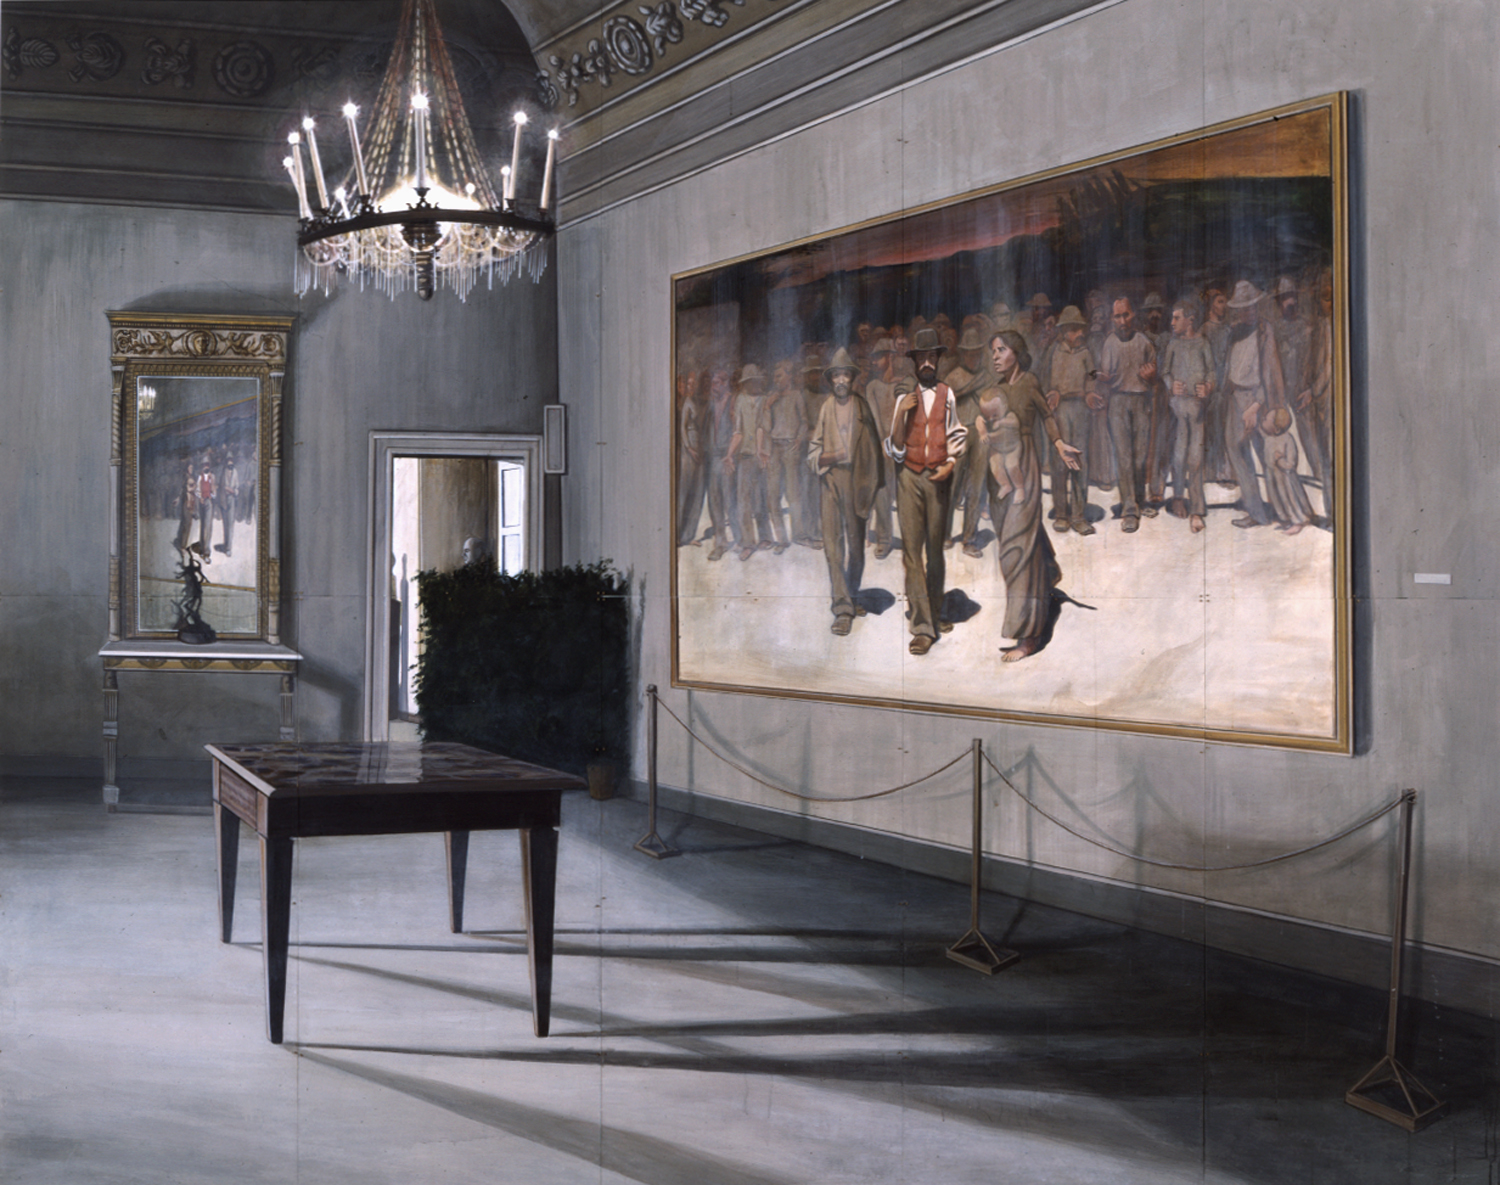 The Lessons of the Fourth Estate, 1990, 8 x 10 feet, acrylic on panels  Courtesy of the Wadsworth Atheneum Museum of Art